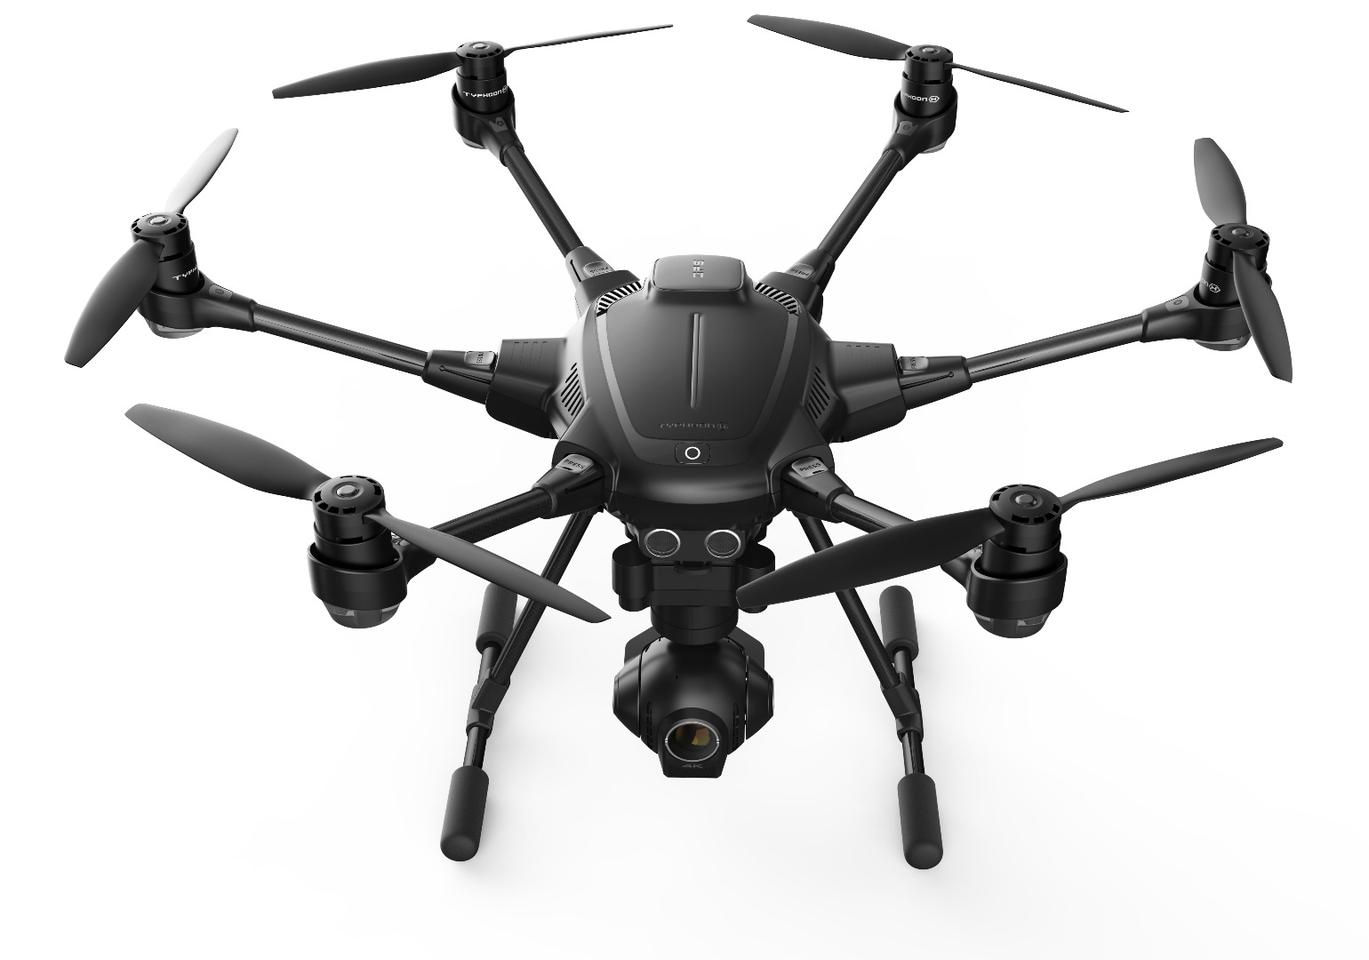 The Typhoon H has composite carbon construction